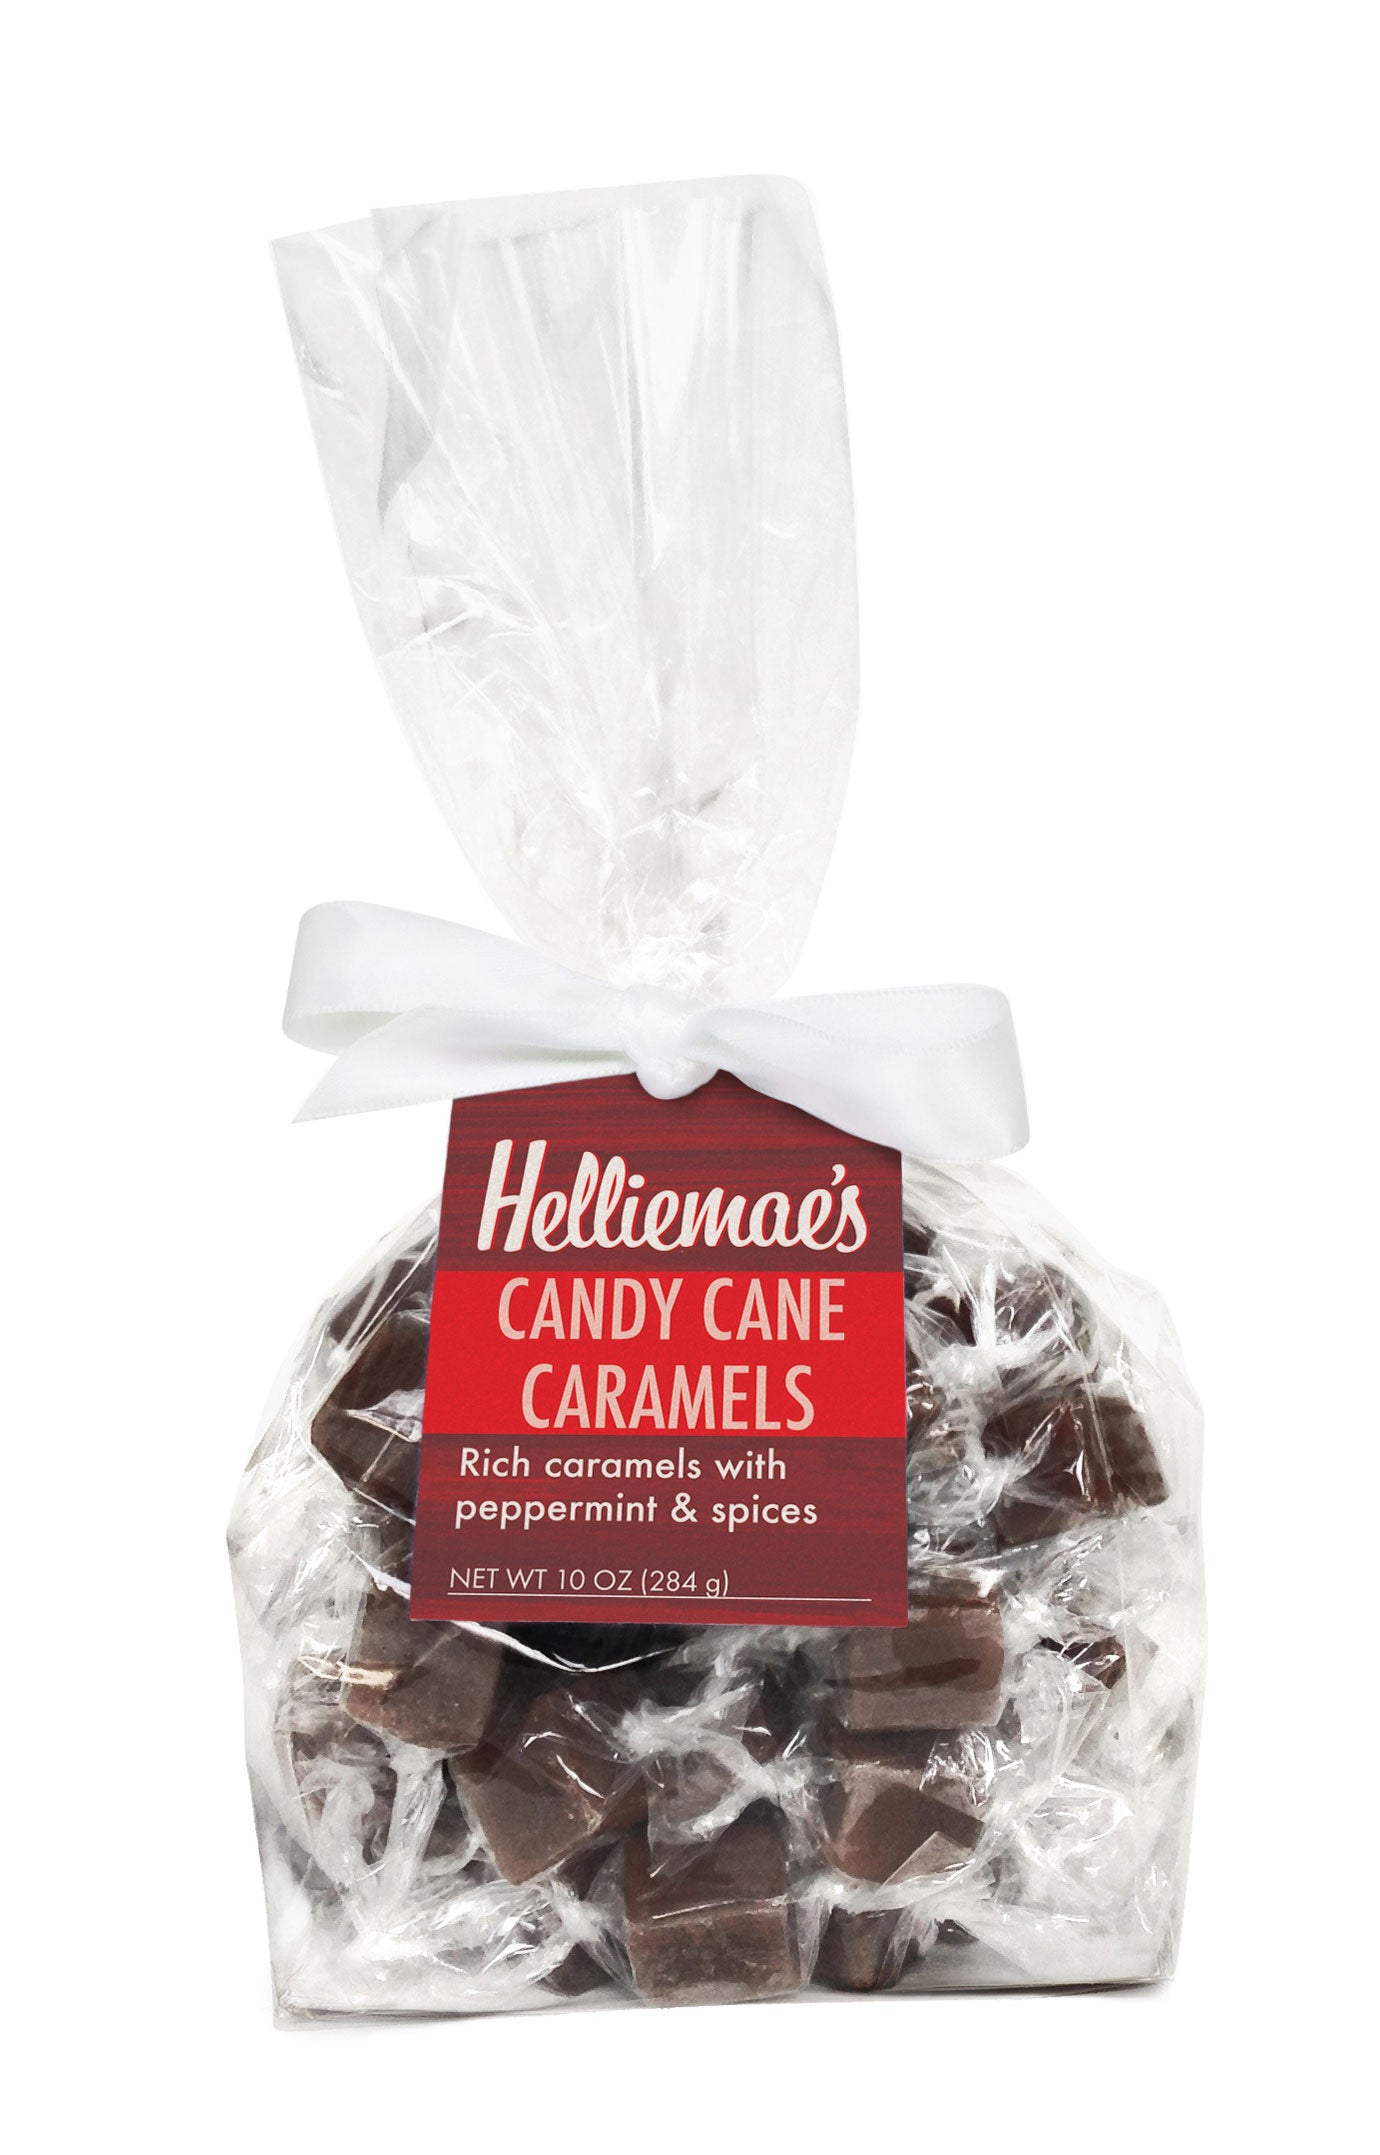 Helliemae's Candy Cane Caramels large gift bag, clear cello bag with gathered top, fastened with white satin ribbon and colorful red hangtag, with effect of milk paint on a barn wall.